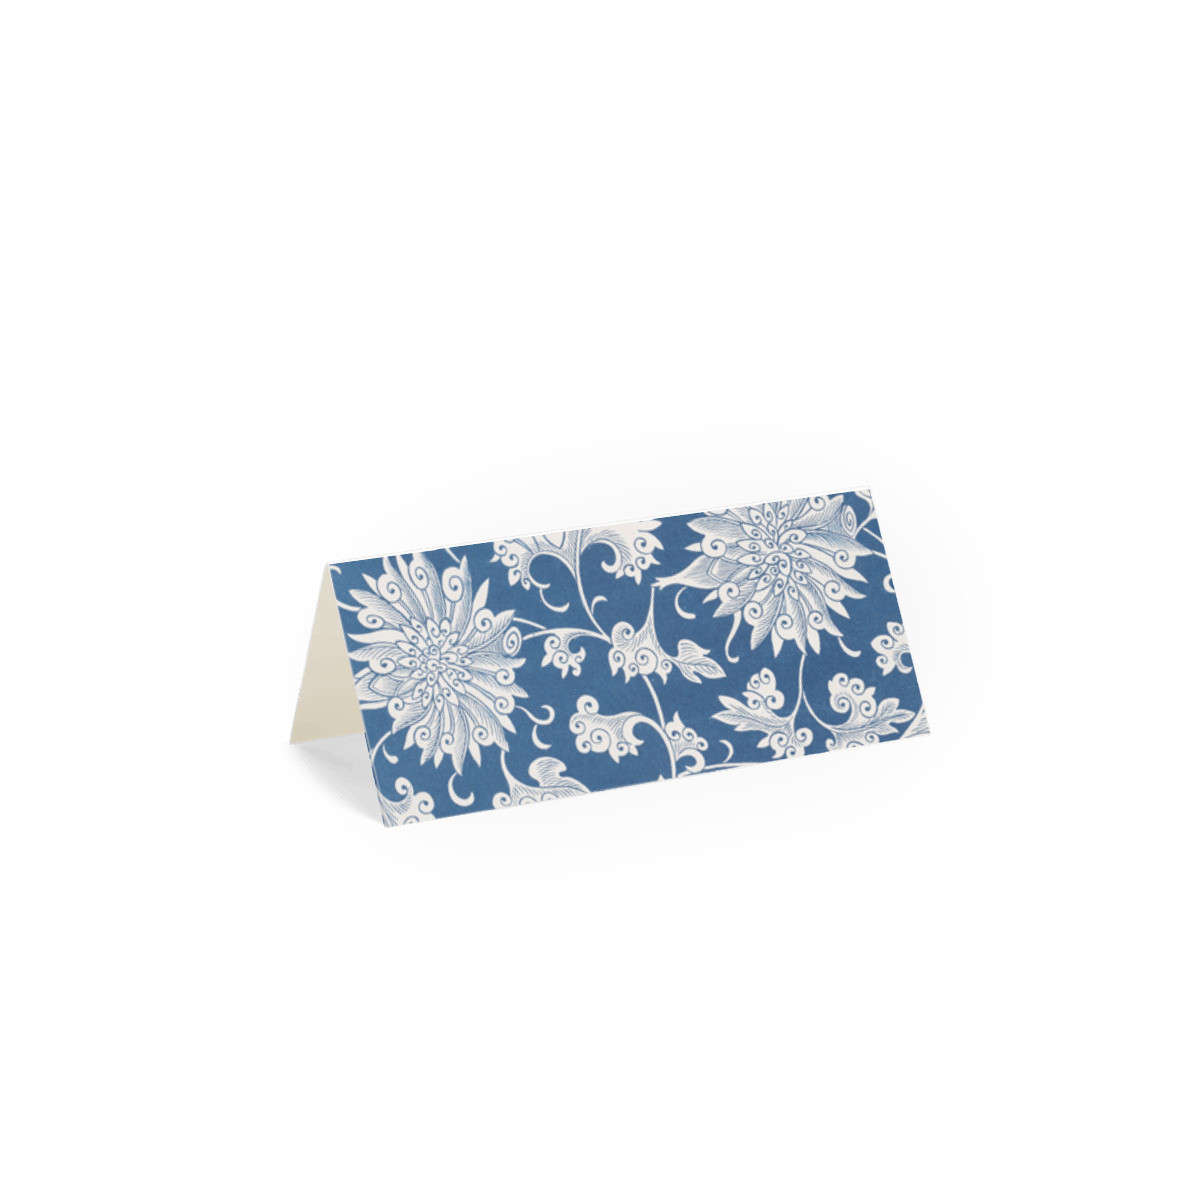 Https%3a%2f%2fwww.papier.com%2fproduct image%2f82535%2f15%2fblue chrysanthemum 19980 arriere 1562150695.png?ixlib=rb 1.1